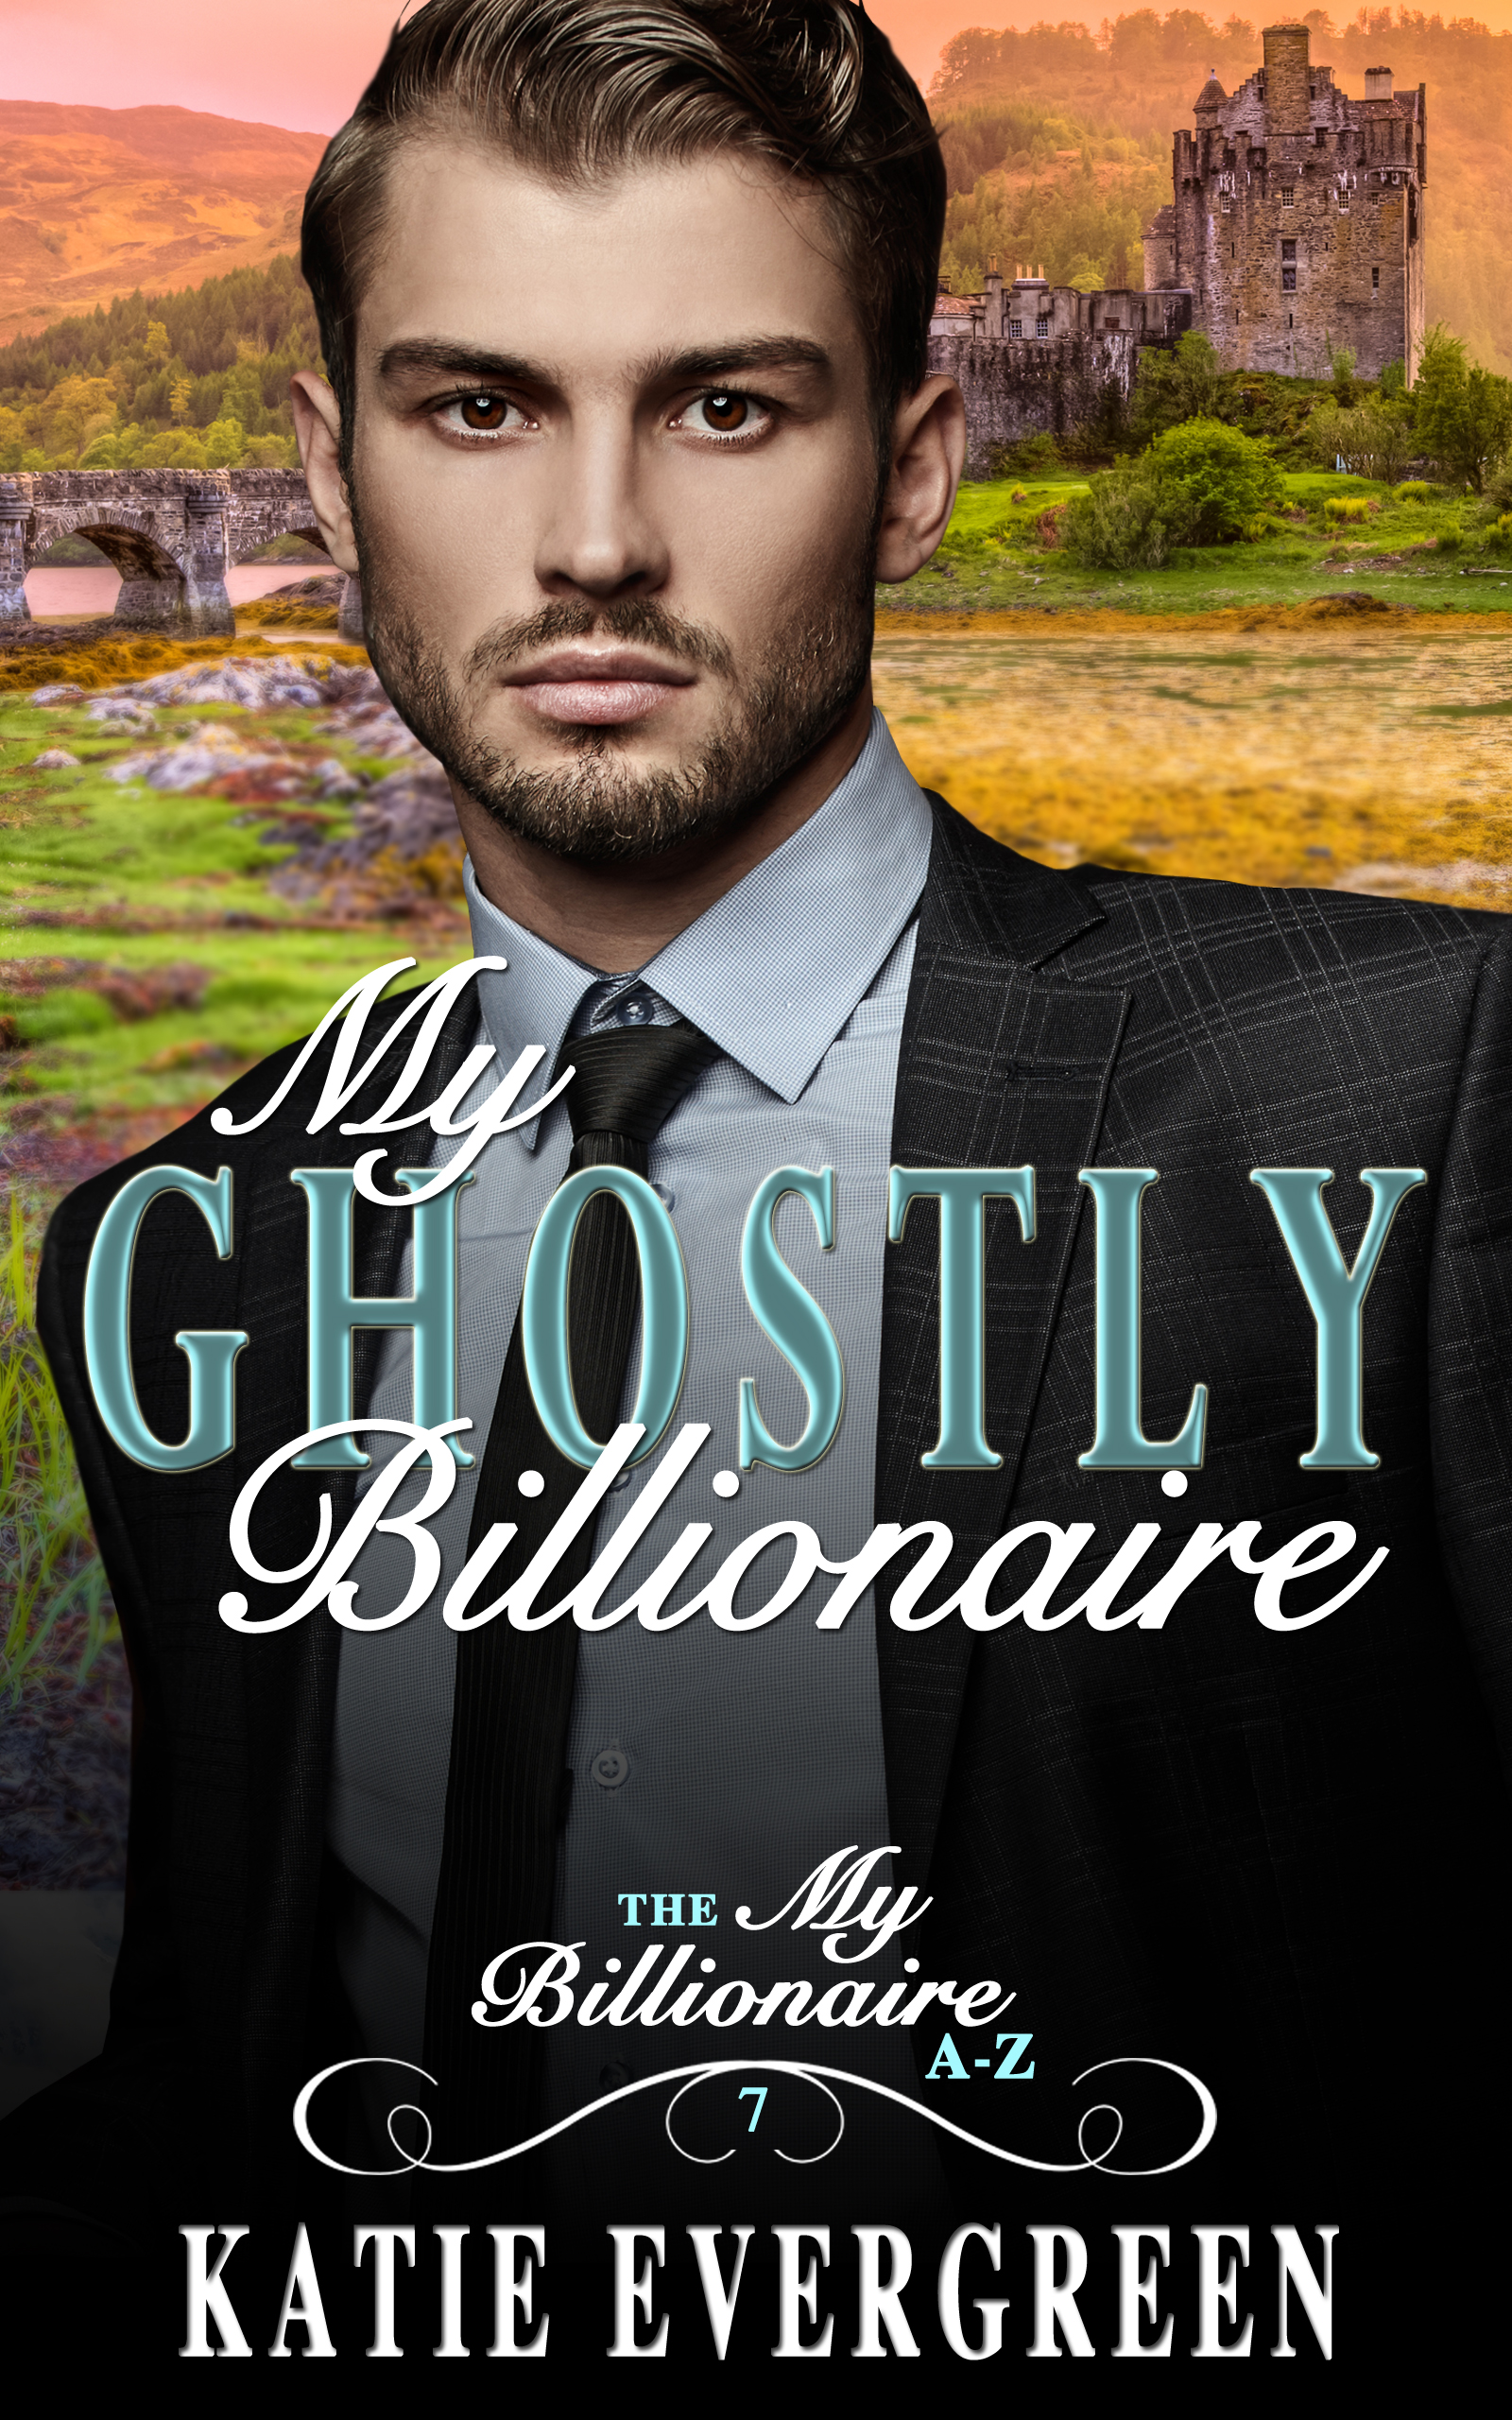 My Ghostly Billionaire - Thrown together in one of the most atmospheric locations on the planet, can they conquer their fears and banish the ghosts?